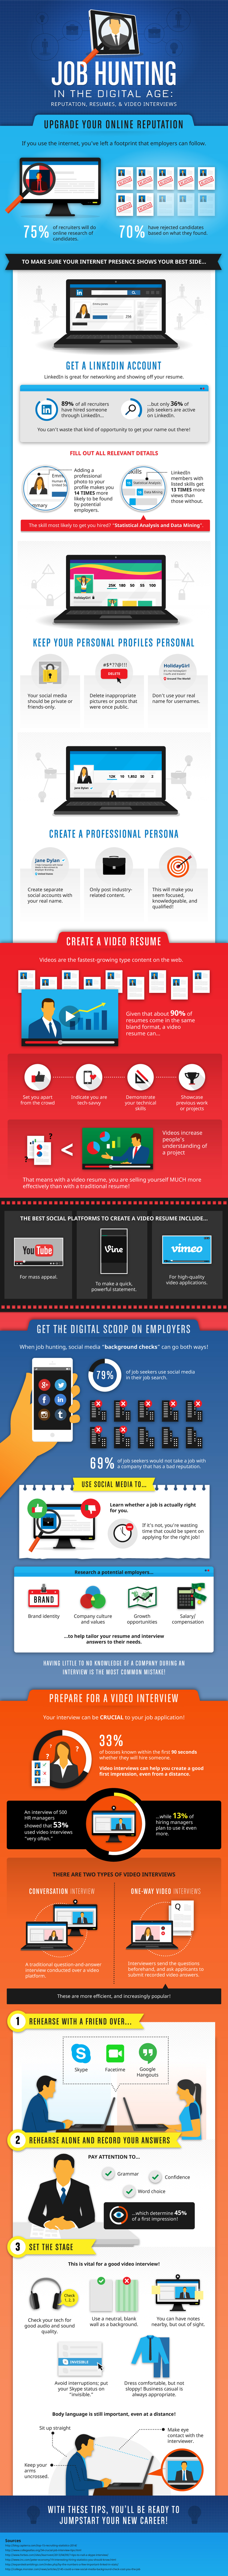 Job Hunting In the Digital Age: Reputation, Resumes & Video Interviews (INFOGRAPHIC)